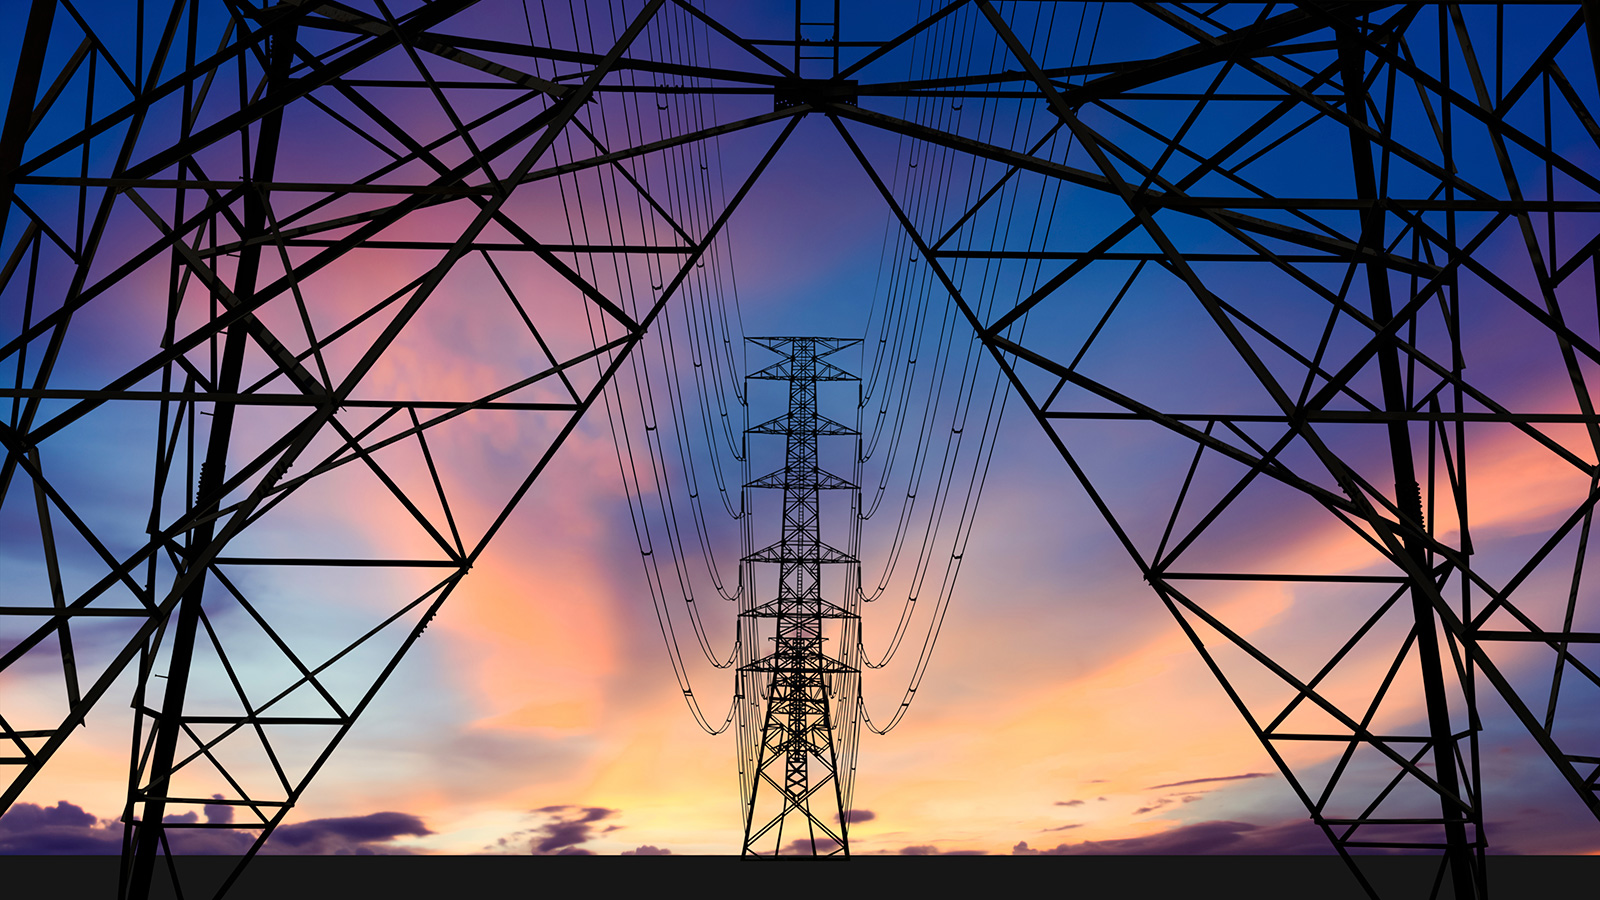 Electrical Transmission Lines Power Grid 1600x900 Download Hd Wallpaper Wallpapertip